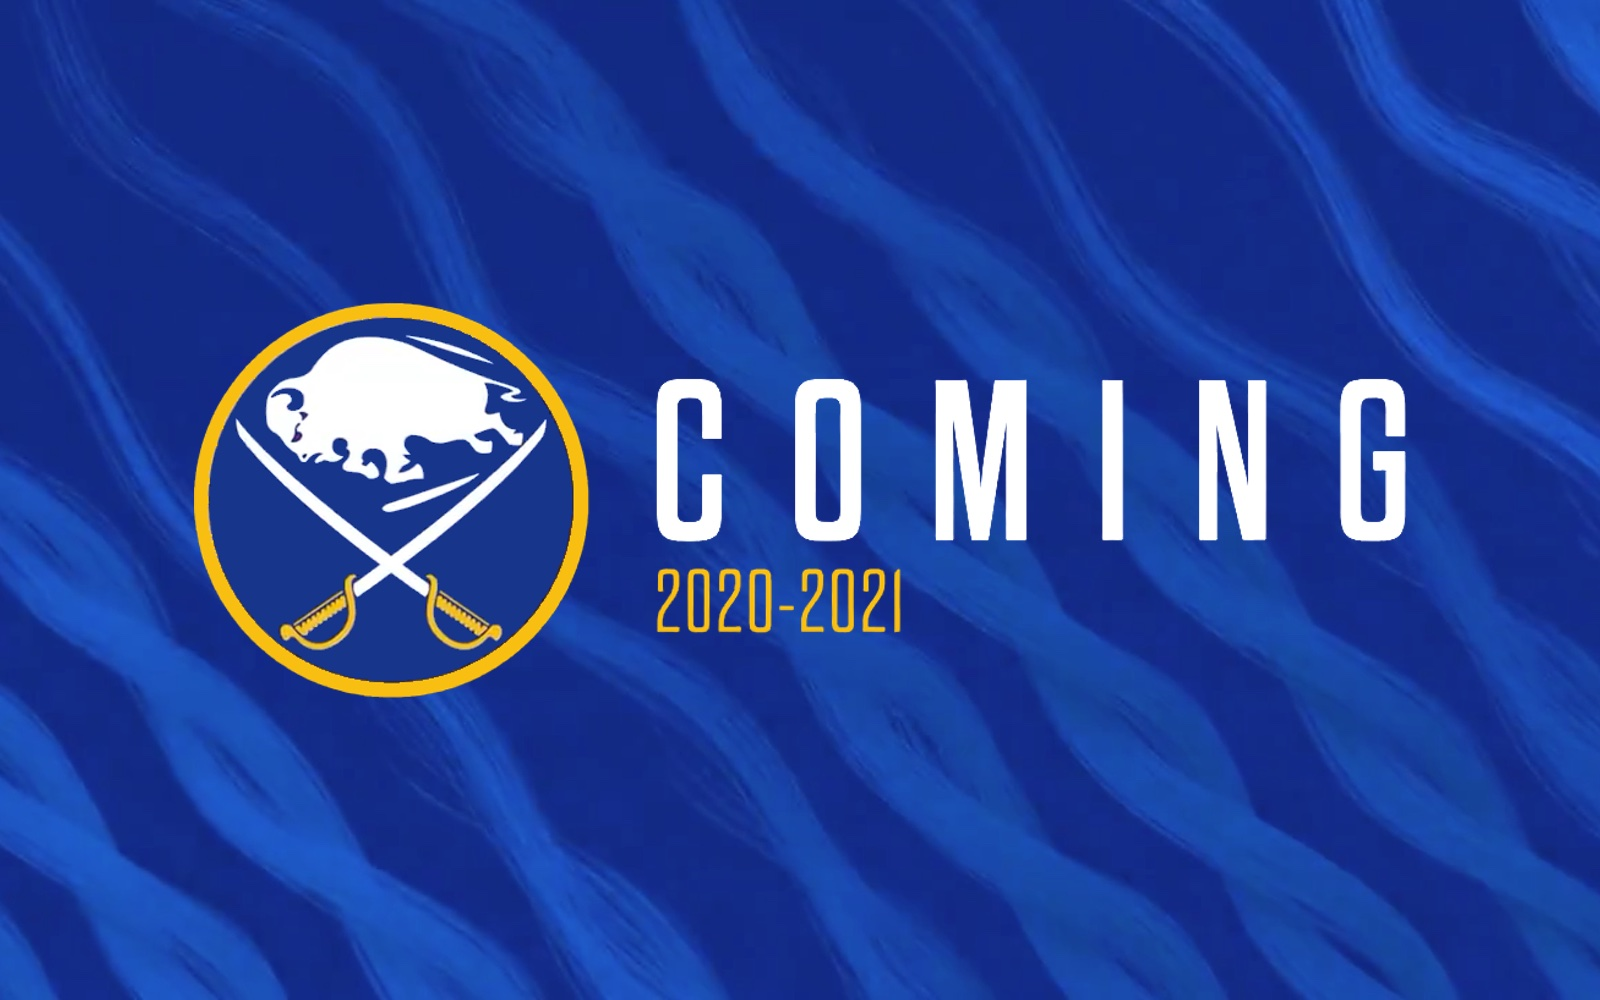 Sabres set third jersey launch, plan for return of royal blue